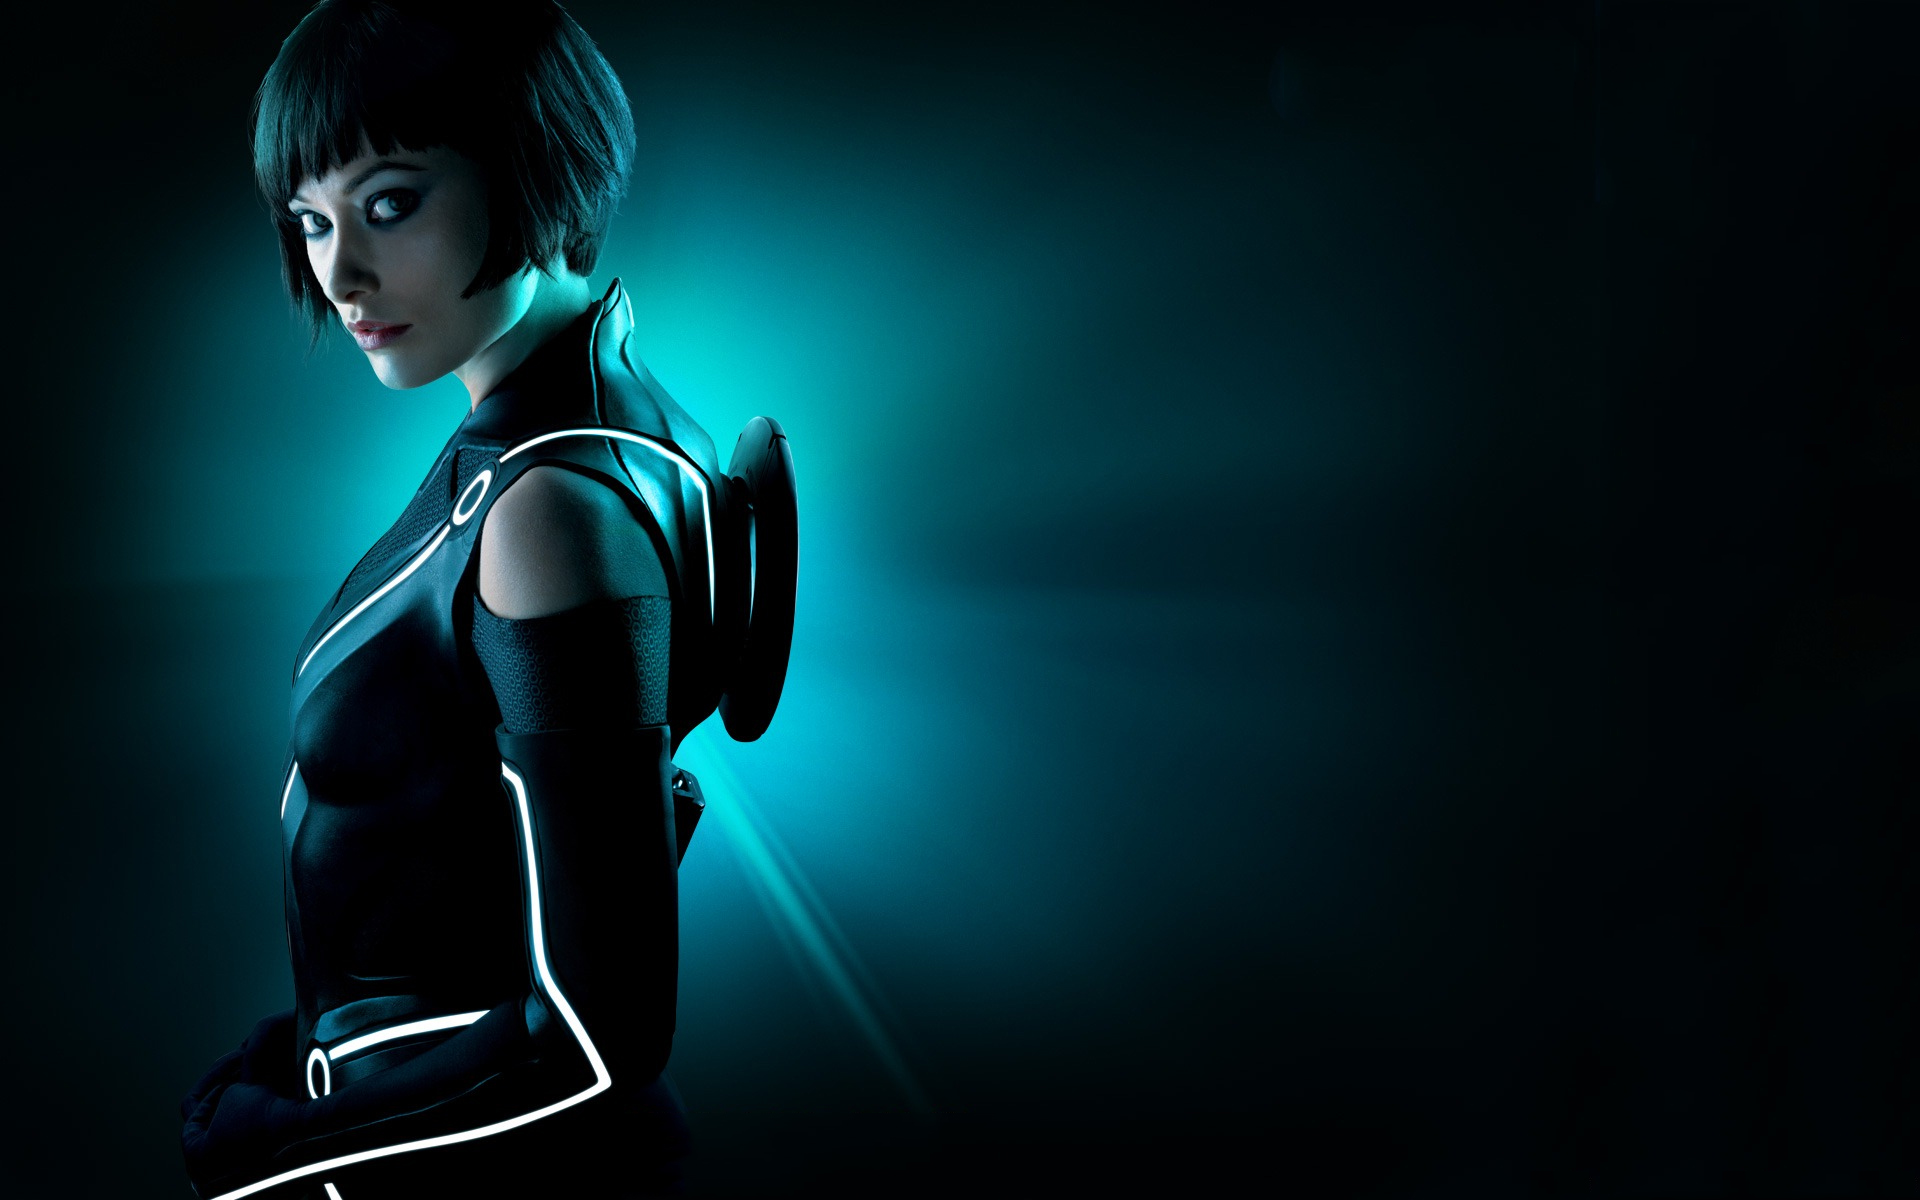 tron wallpapers android